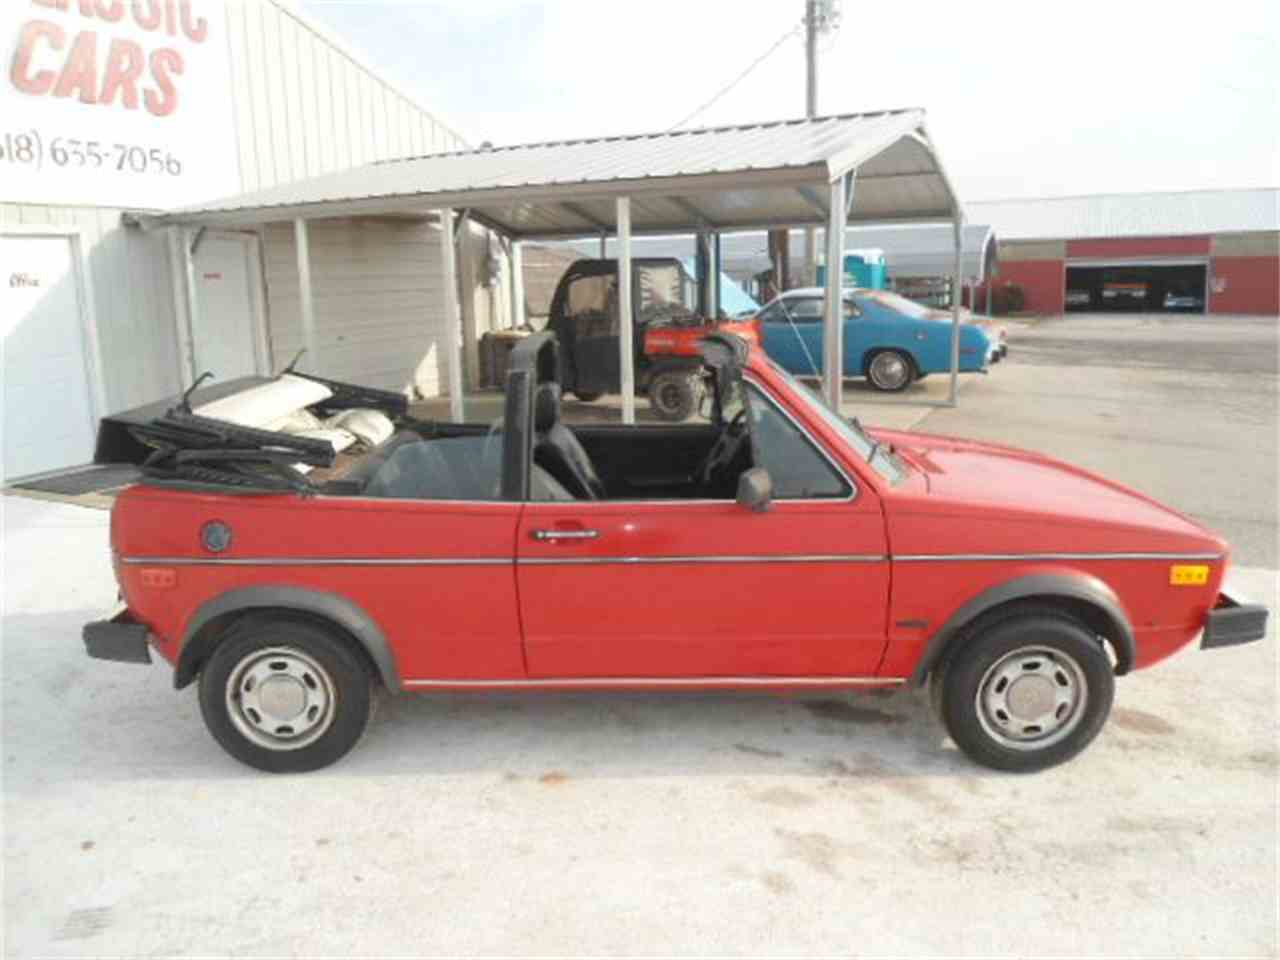 1985 Volkswagen Rabbit For Sale Classiccars Com Cc 938630